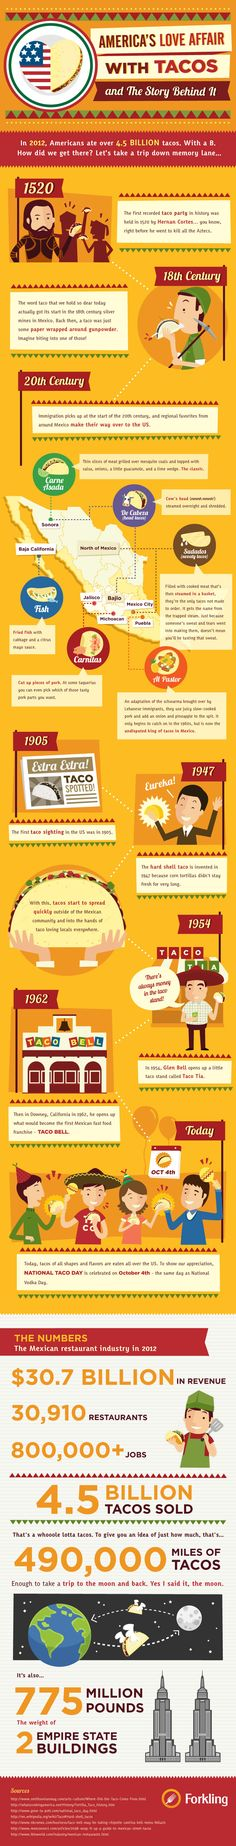 A look at the history of #tacos and a look at how the #Mexican dish came to invade the U.S. in such a big way - http://www.finedininglovers.com/blog/food-drinks/the-history-of-taco-food-infographic/